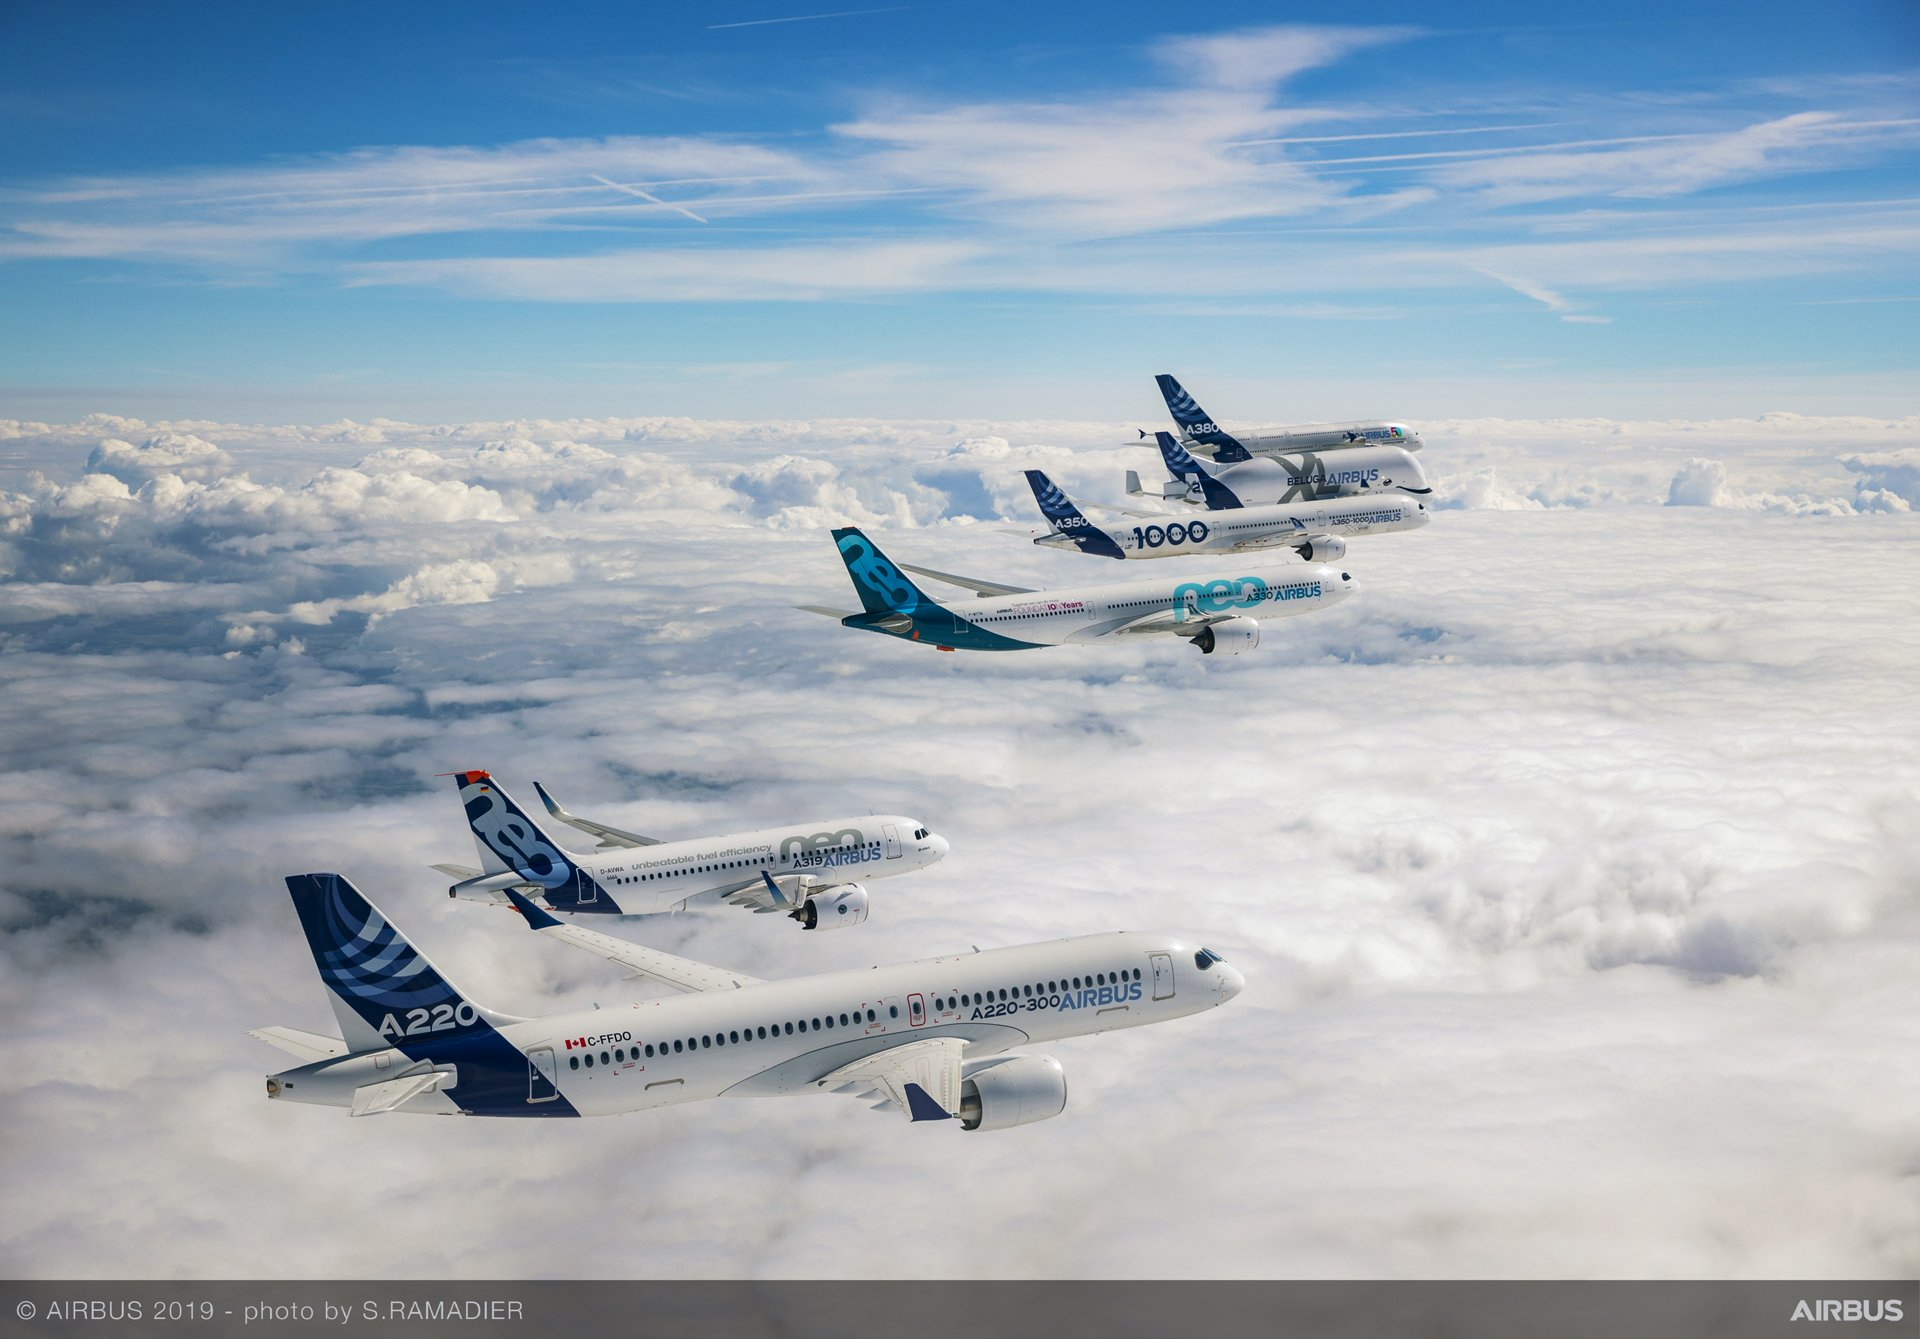 Formation flight with Airbus Commercial Aircraft: 50-year celebration